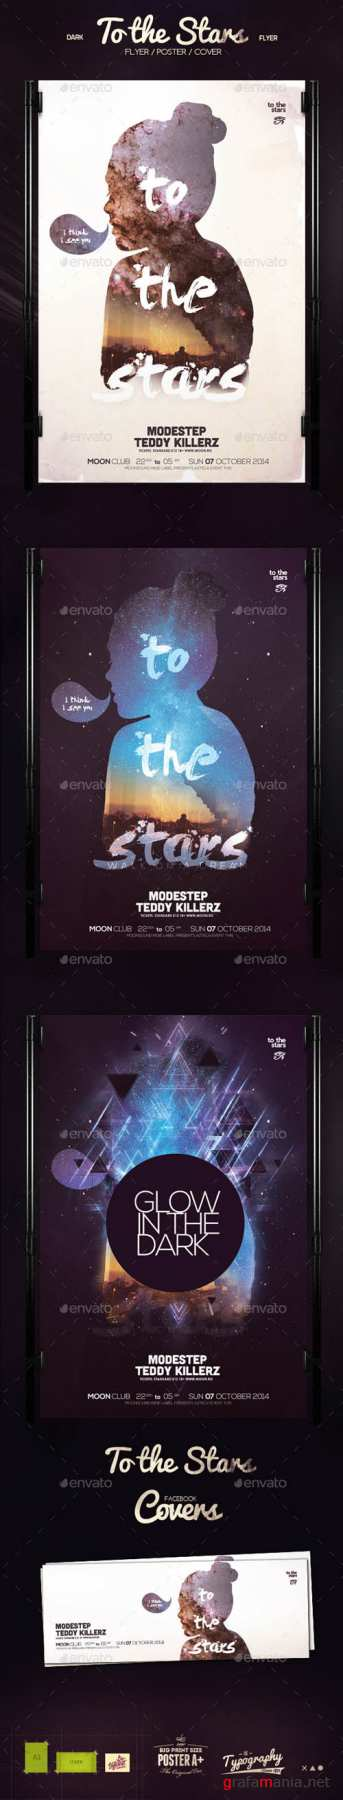 To the Stars Poster 9270692